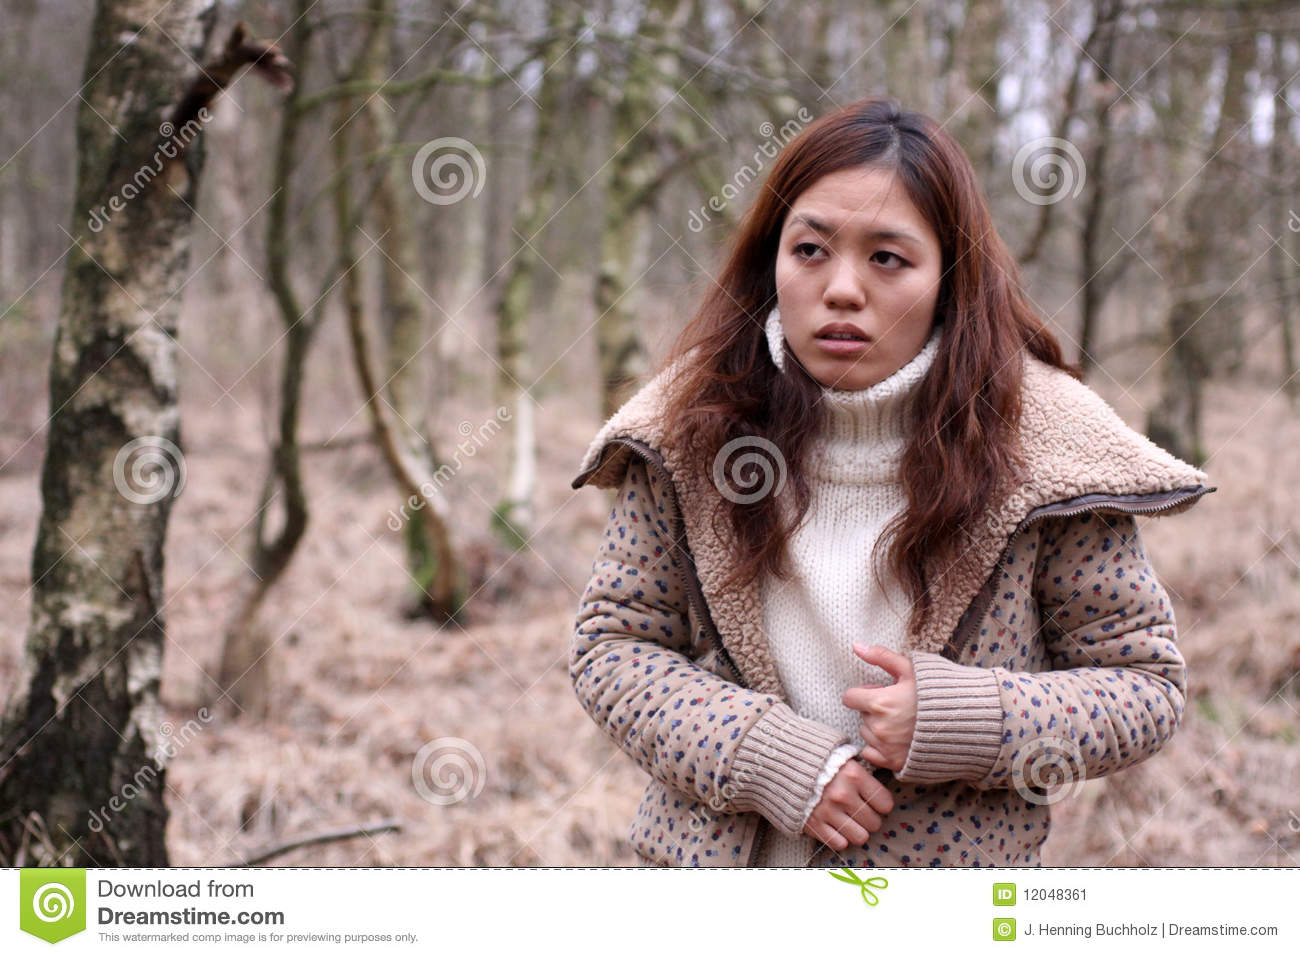 forest asian girl personals The amwf social network is a online community for asian guys and white girls, black girls, hispanic girls, asian girls, etc our focus is to foster friendship or relationship between asian guys and girls who admire them.